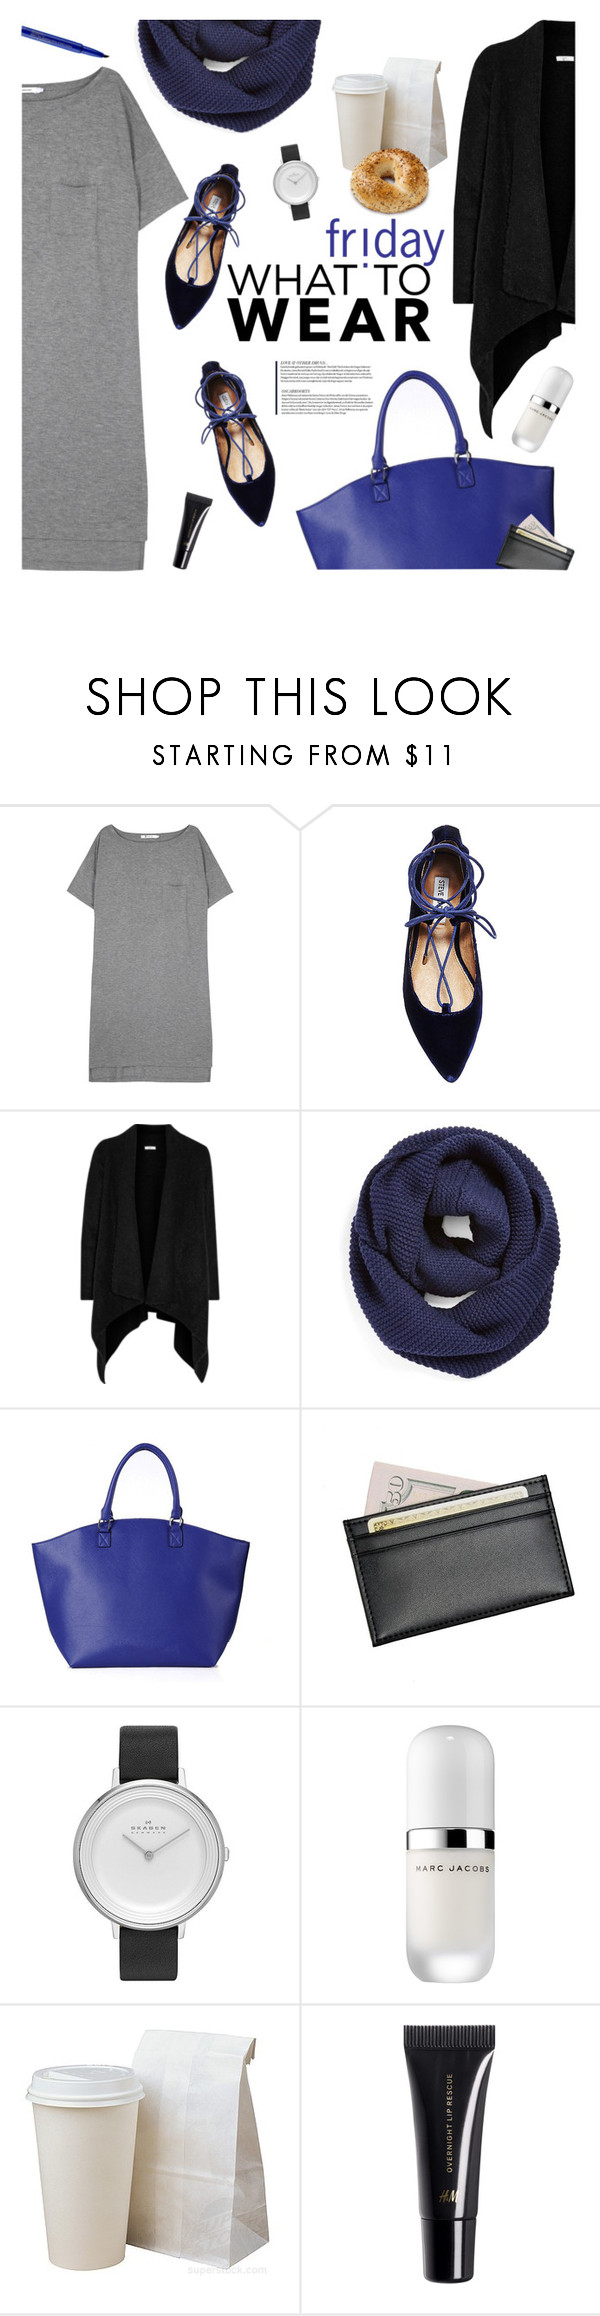 """Comfy and easy"" by magdafunk ❤ liked on Polyvore featuring T By Alexander Wang, Steve Madden, Joie, BP., Royce Leather, Skagen, Marc Jacobs, H&M and Smashbox"